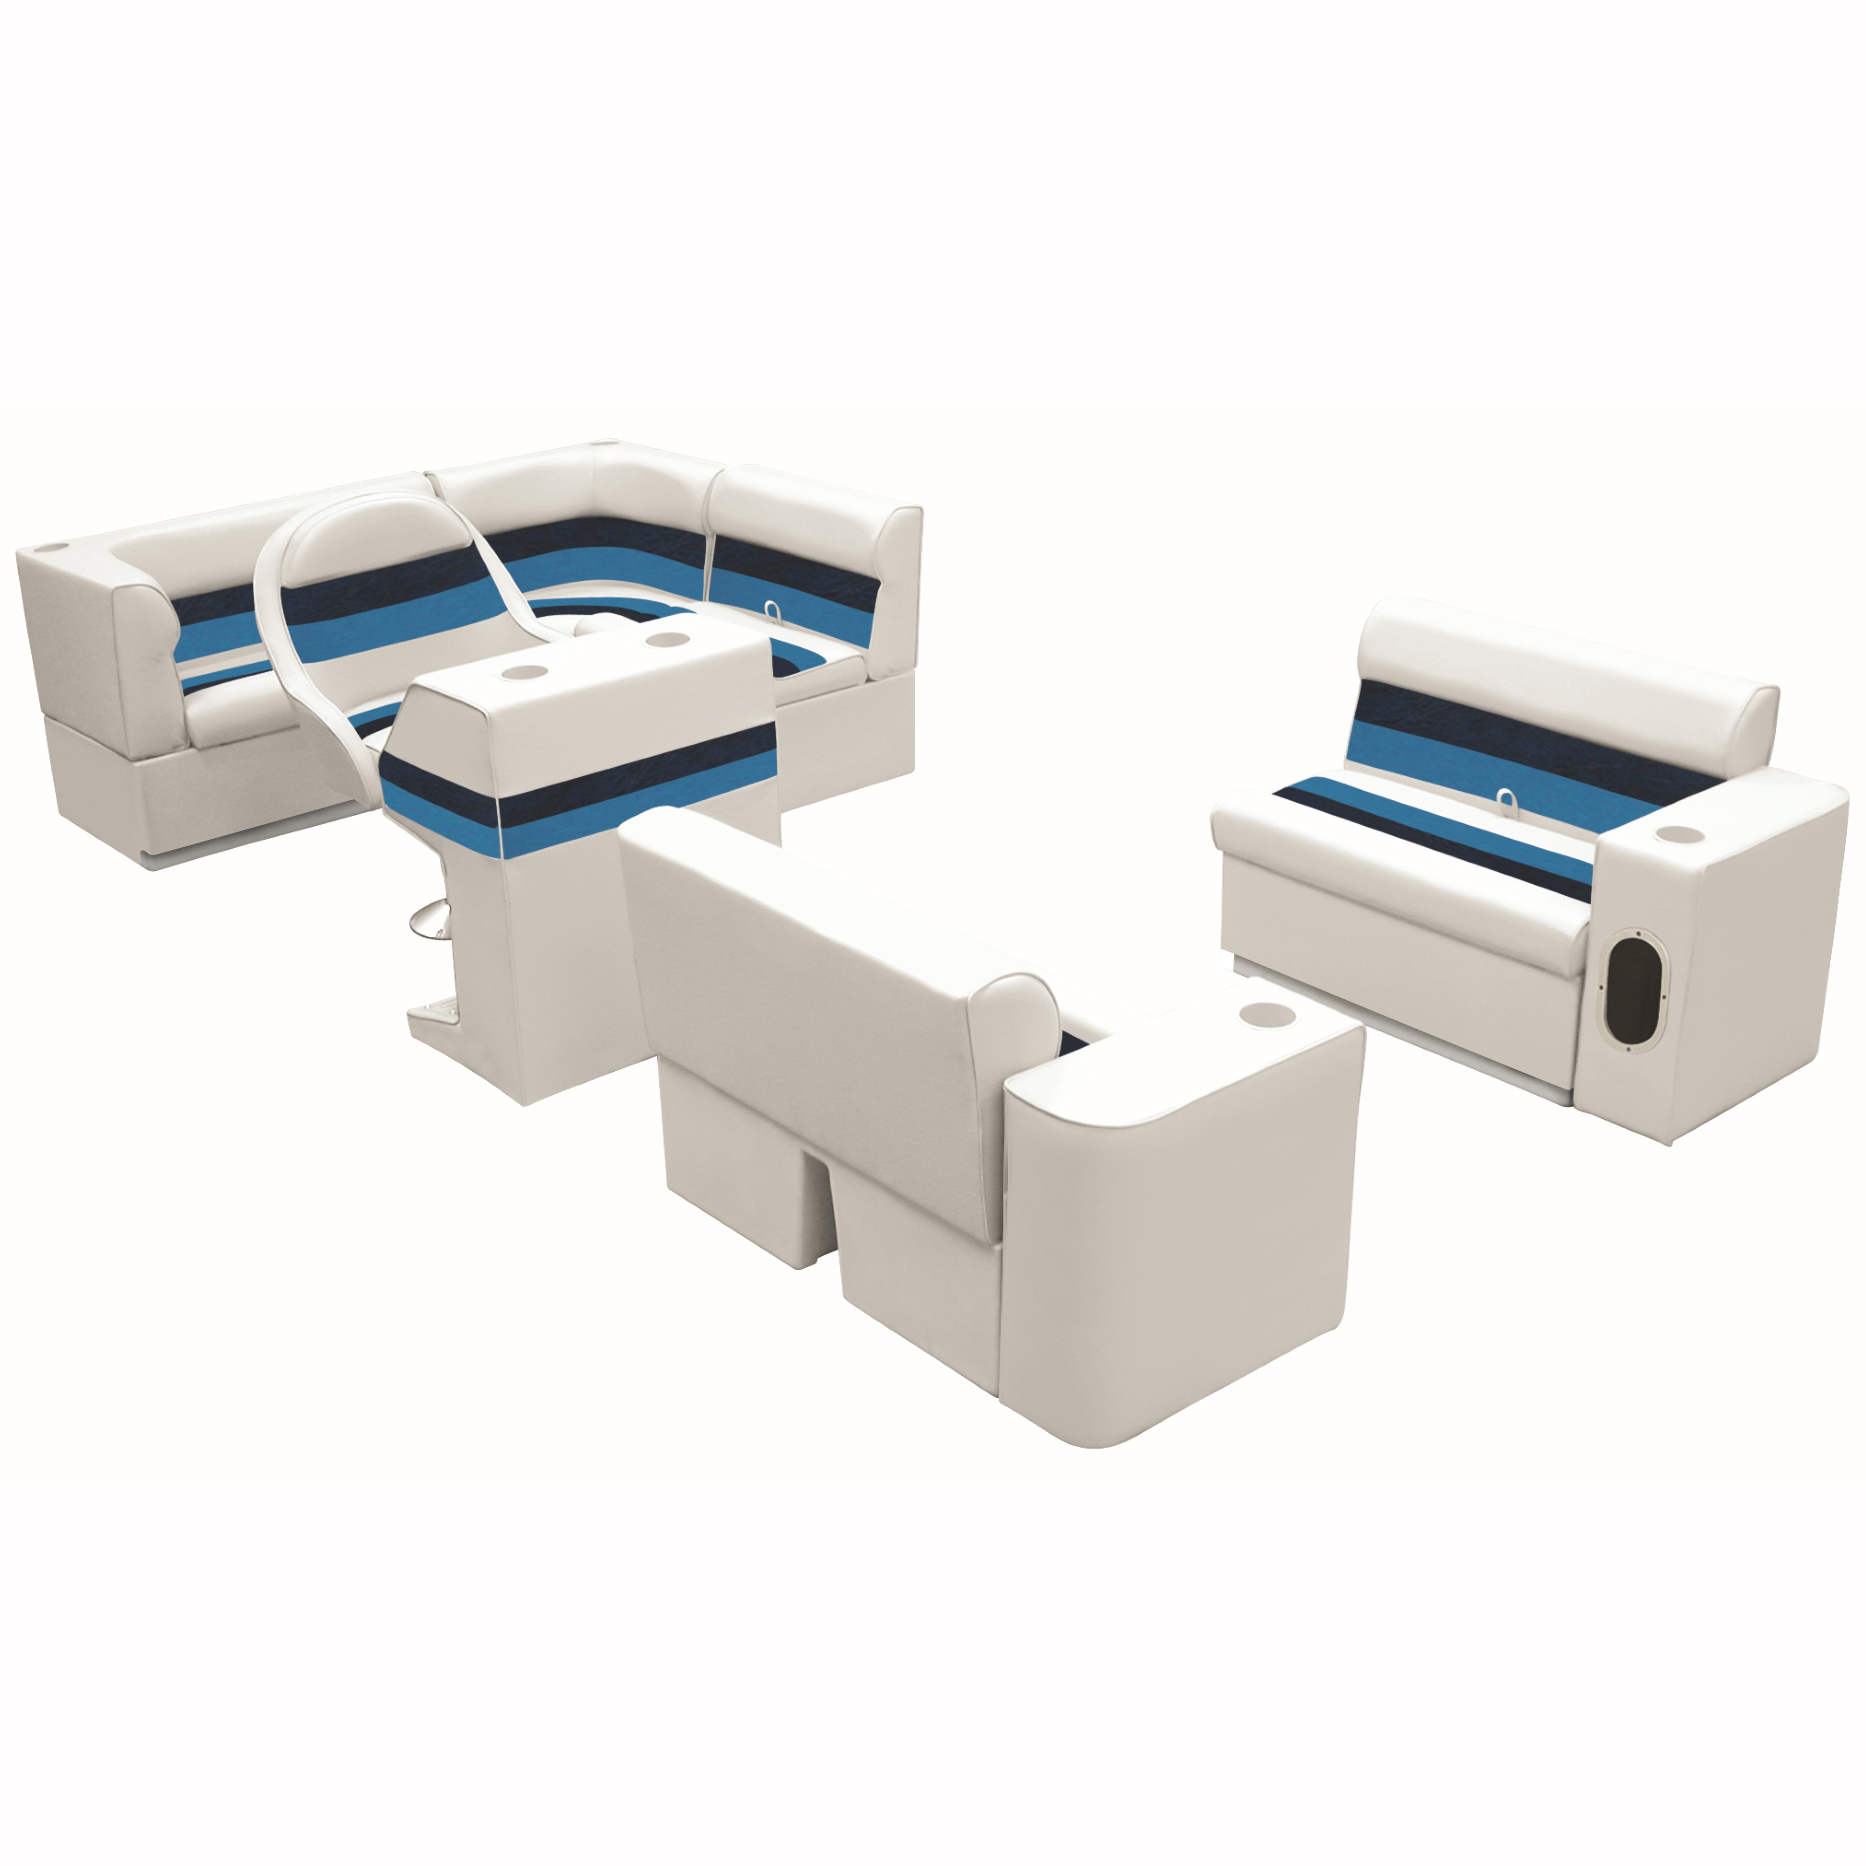 Deluxe Pontoon Seats w/Toe Kick Base, Group 1 Package Plus Stand, White/Navy/Blu